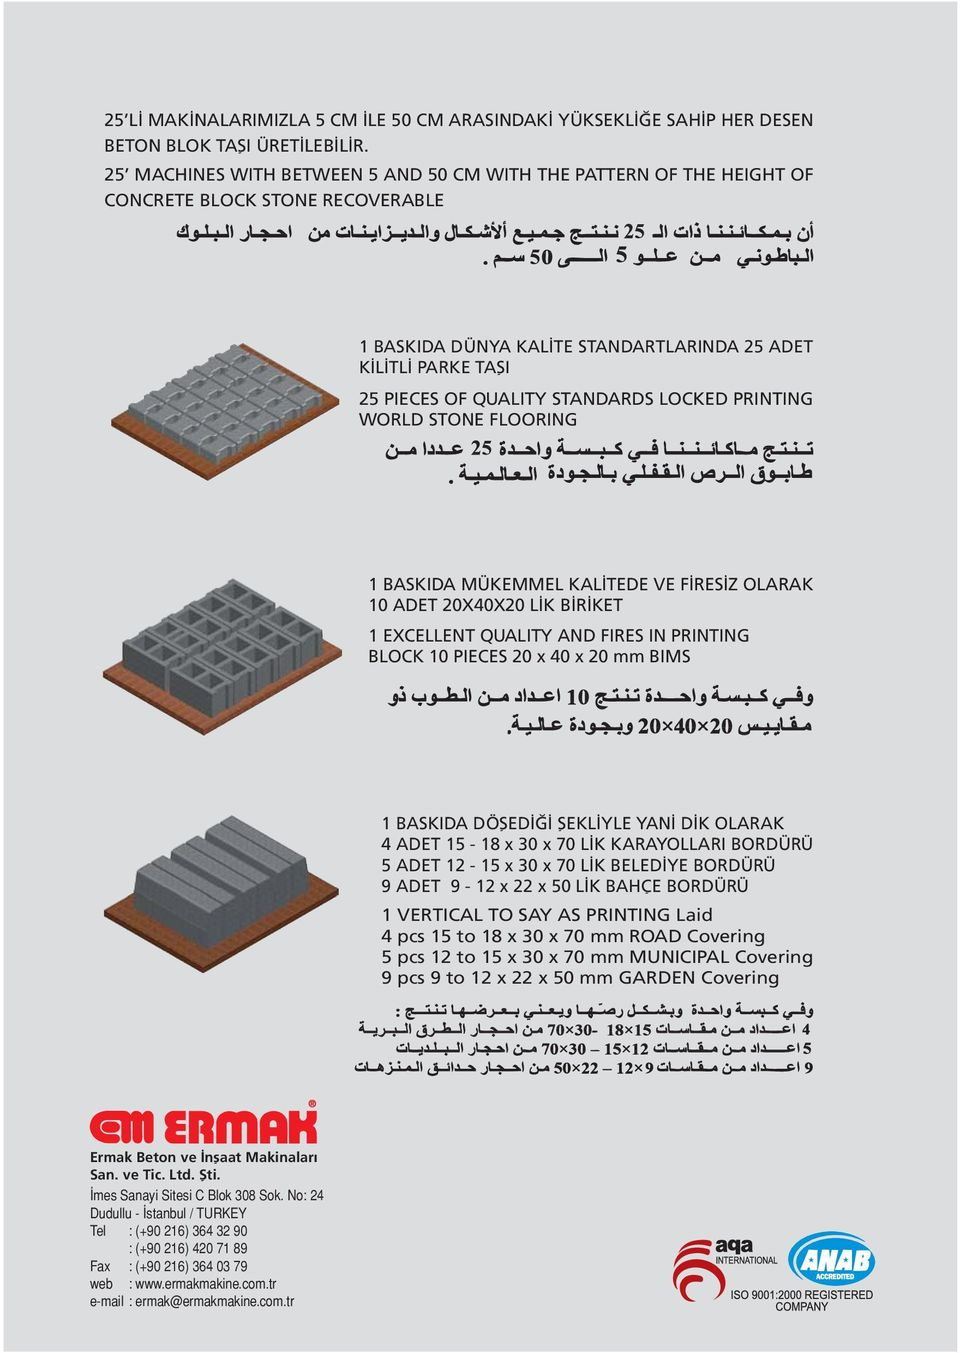 STANDARDS LOCKED PRINTING WORLD STONE FLOORING 1 BASKIDA MÜKEMMEL KALÝTEDE VE FÝRESÝZ OLARAK 10 ADET 20X40X20 LÝK BÝRÝKET 1 EXCELLENT QUALITY AND FIRES IN PRINTING BLOCK 10 PIECES 20 x 40 x 20 mm